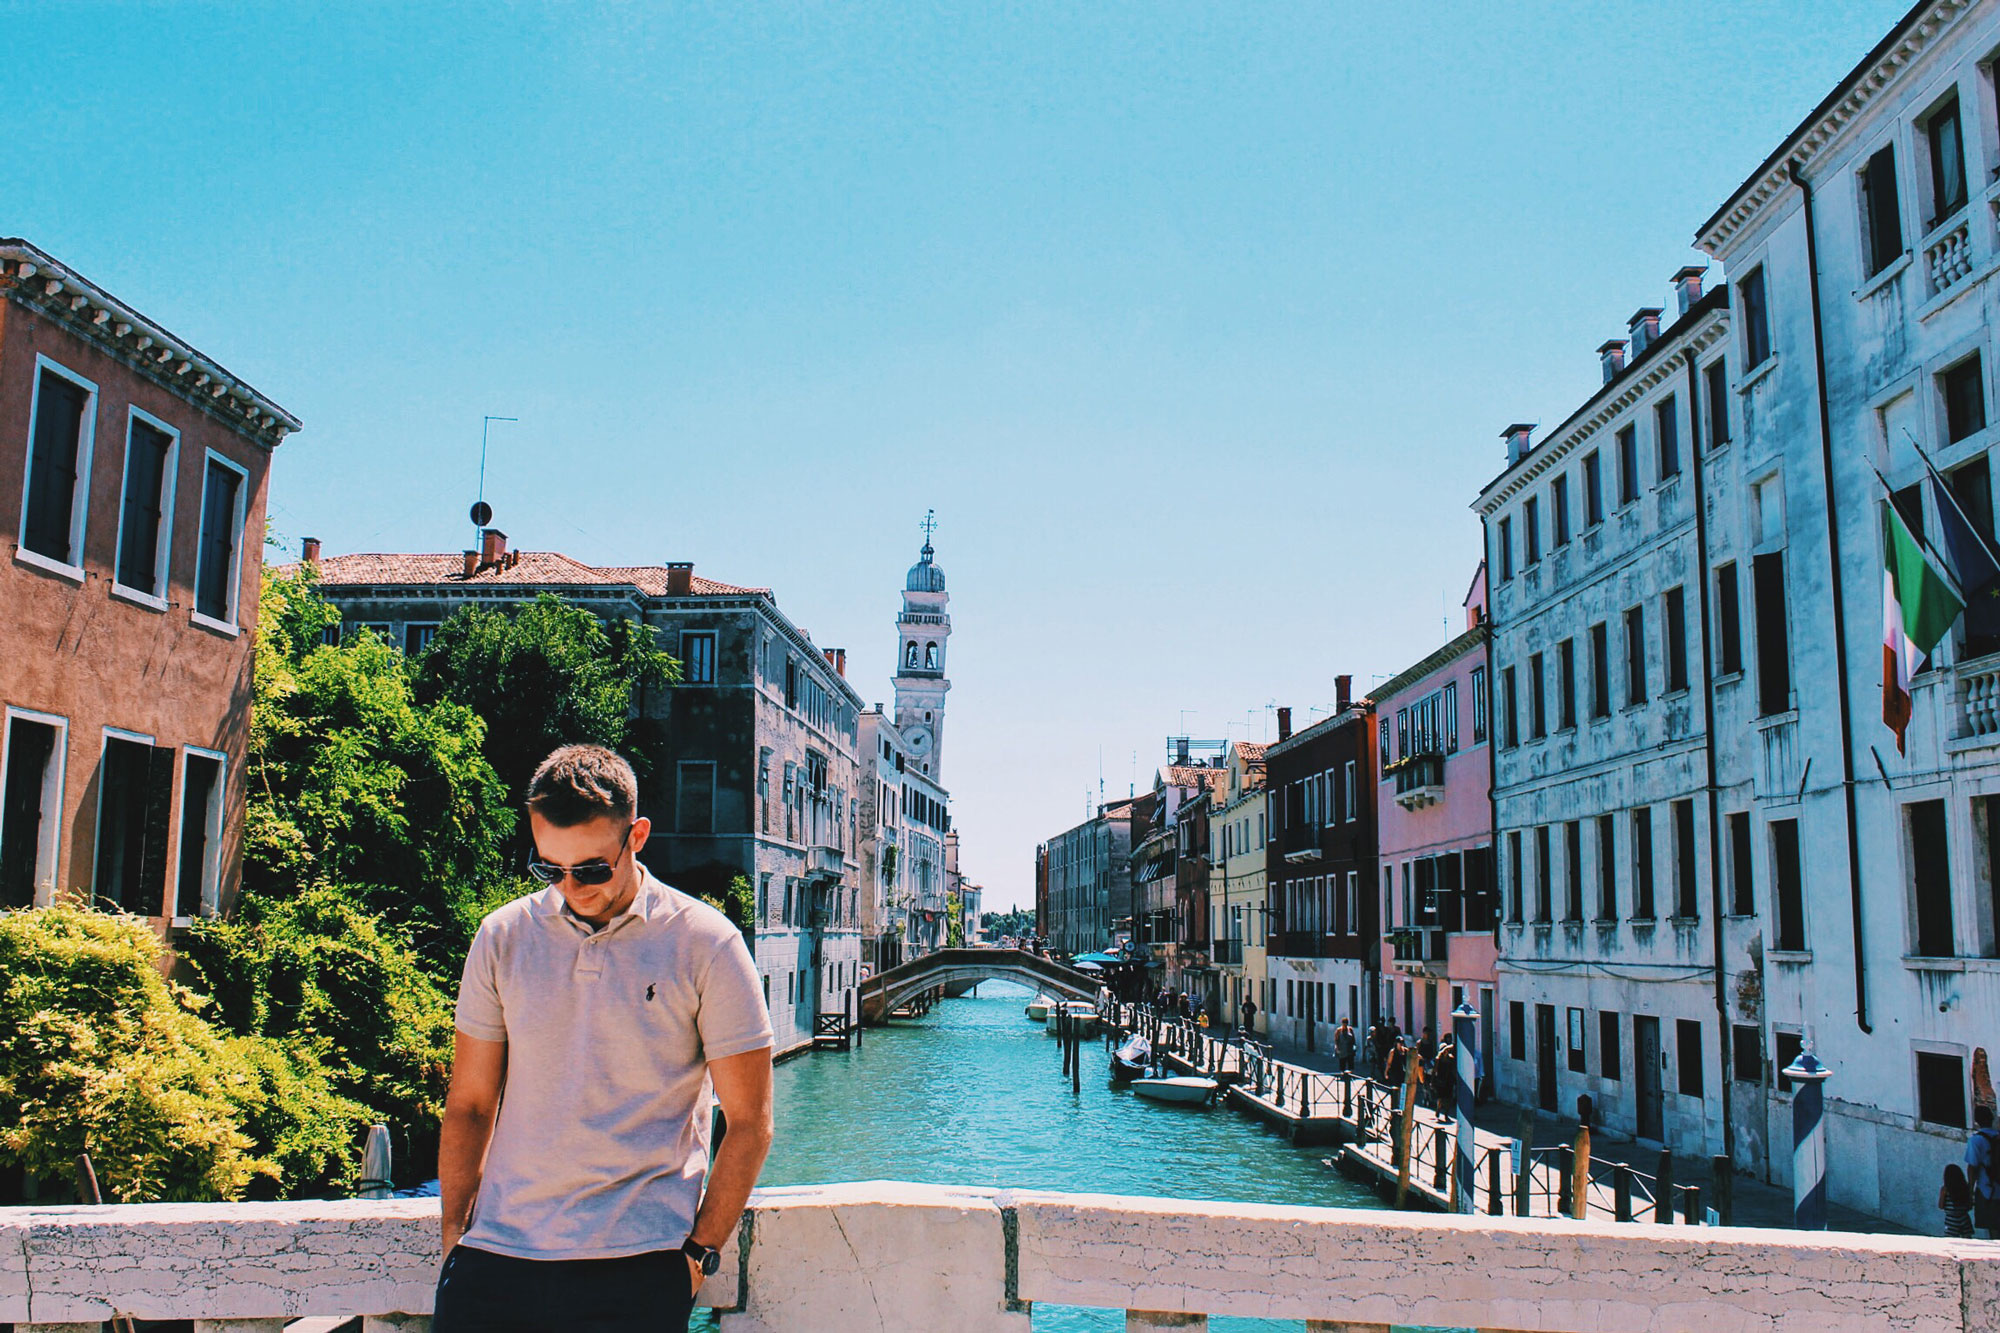 Male student posing in streets of Venice